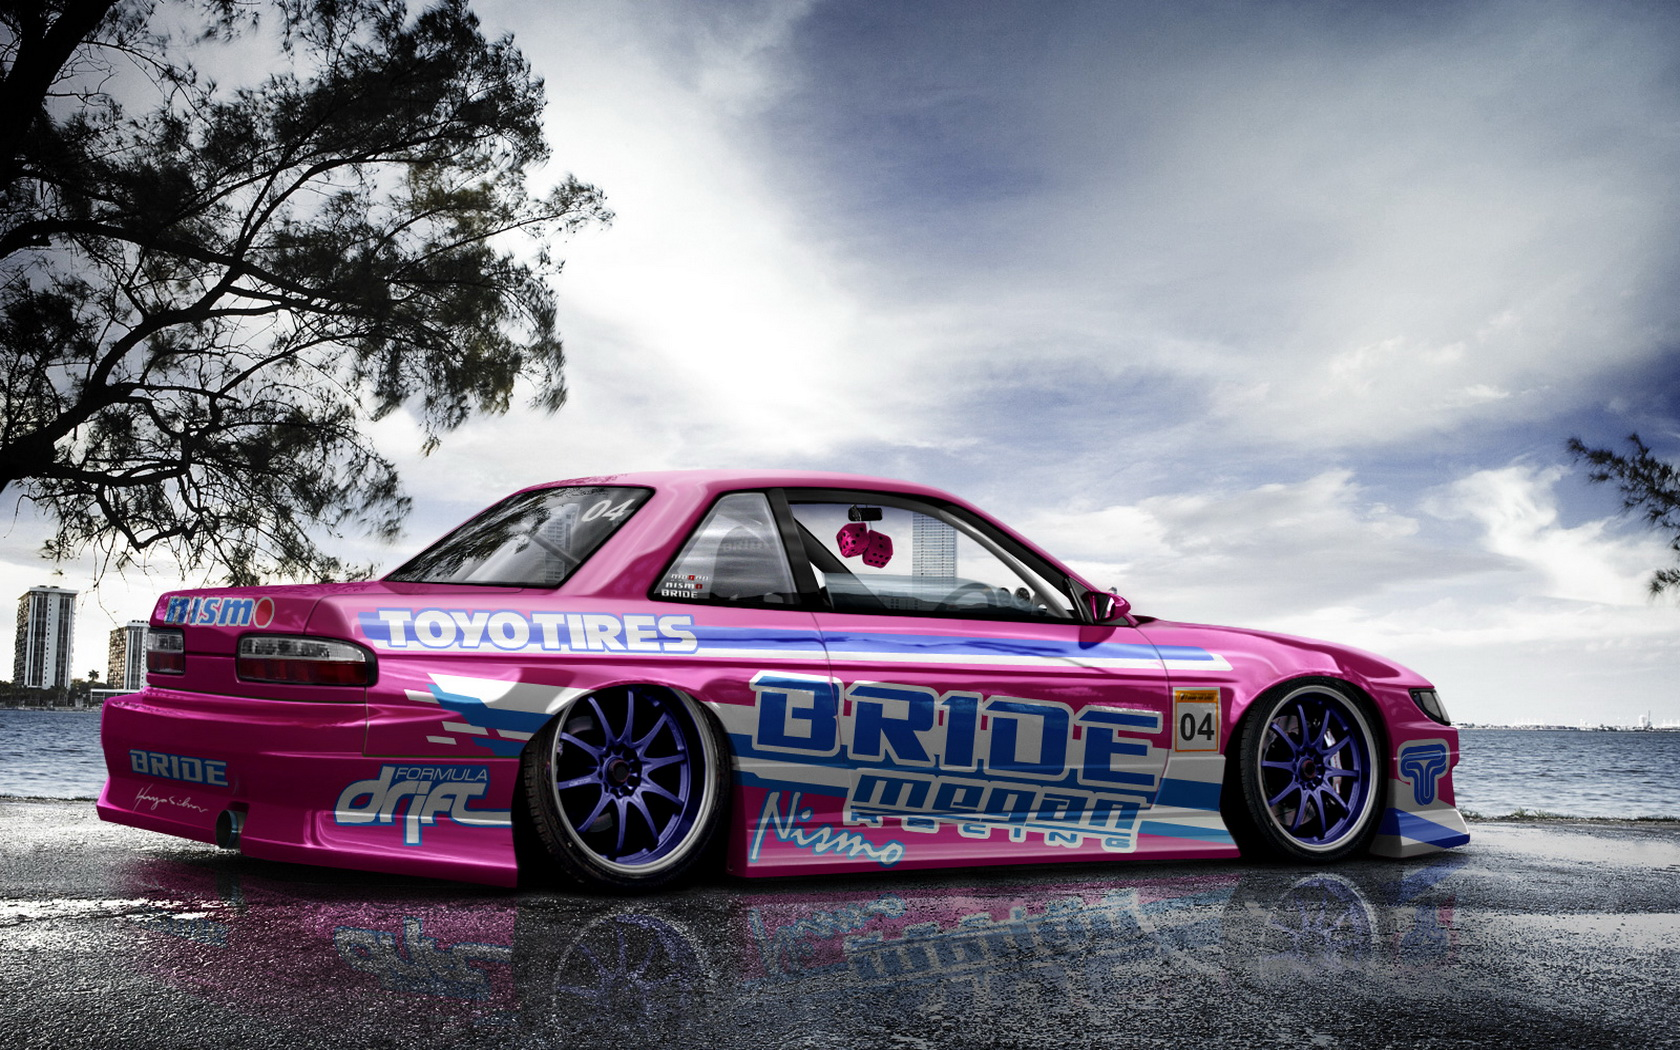 Nissan Silvia Wallpaper And Background Image 1680x1050 Id 391824 Wallpaper Abyss